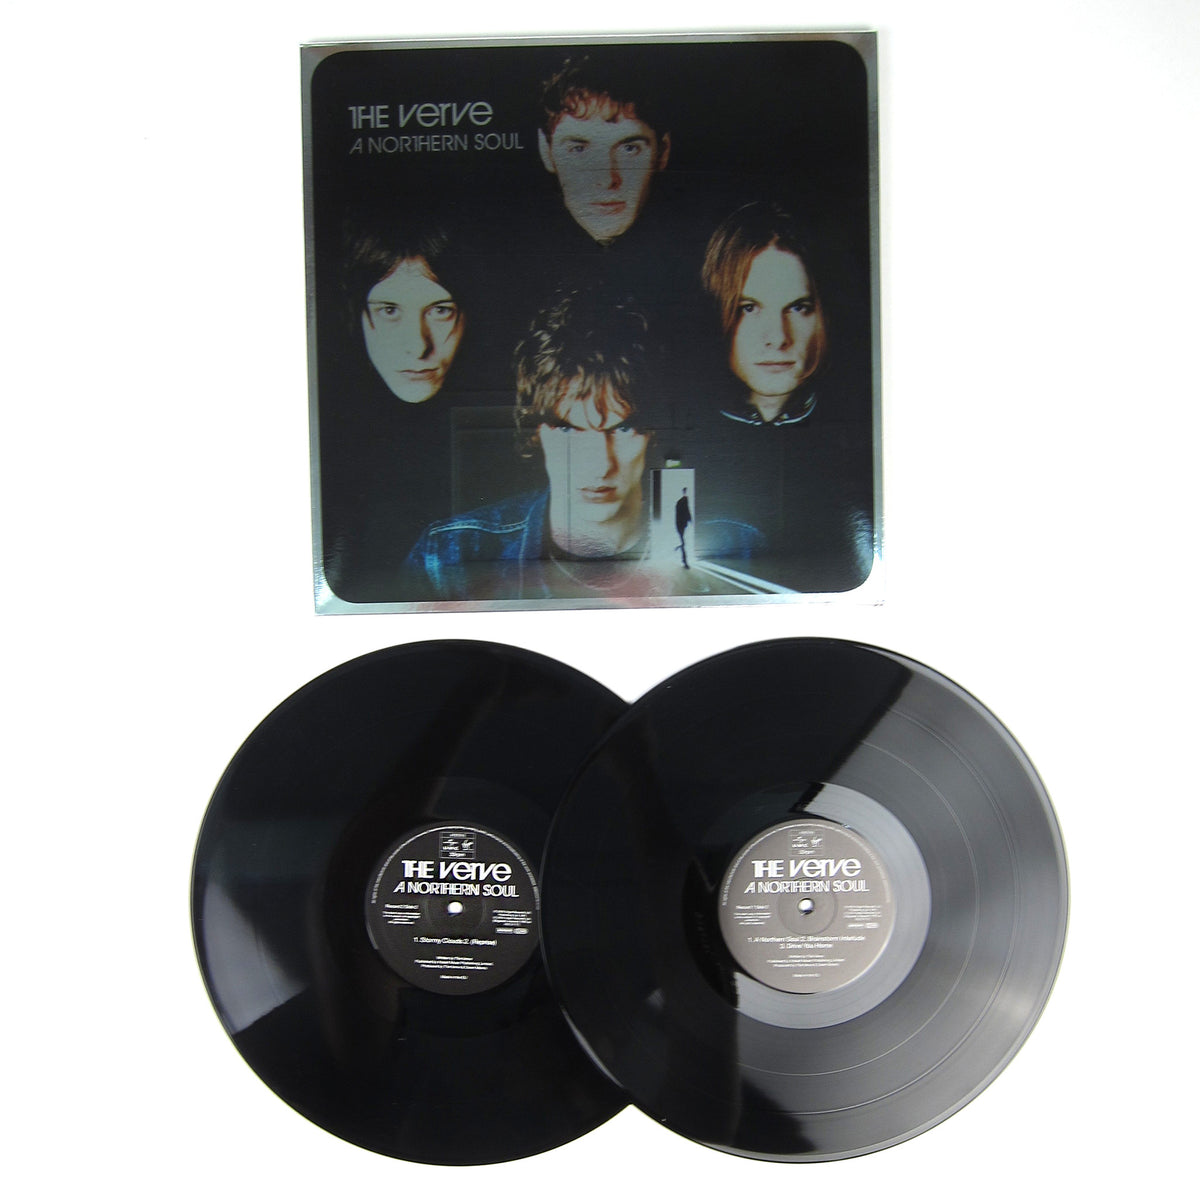 The Verve: A Northern Soul (180g) Vinyl 2LP